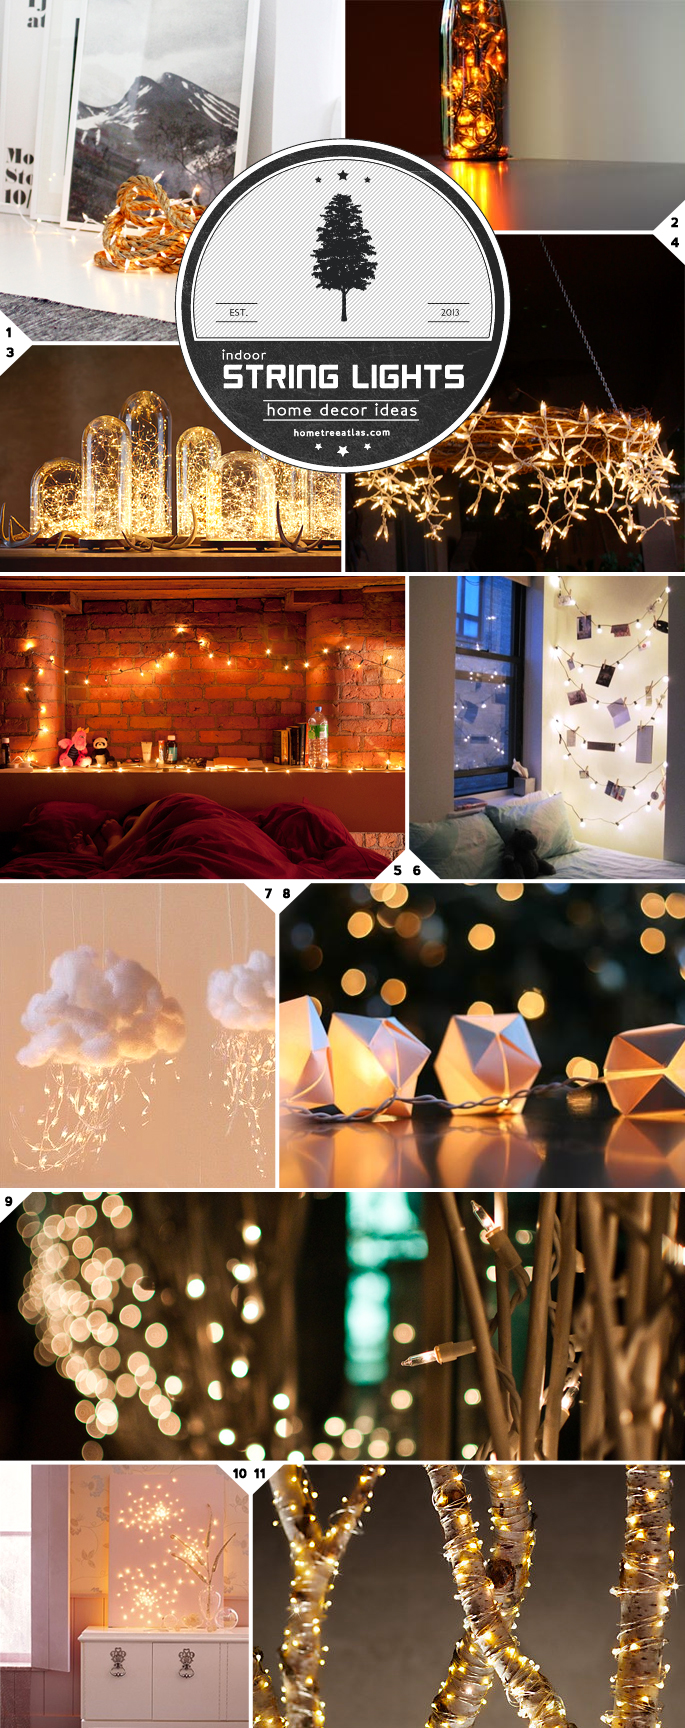 home decor ideas beautiful ways to use string lights indoors home